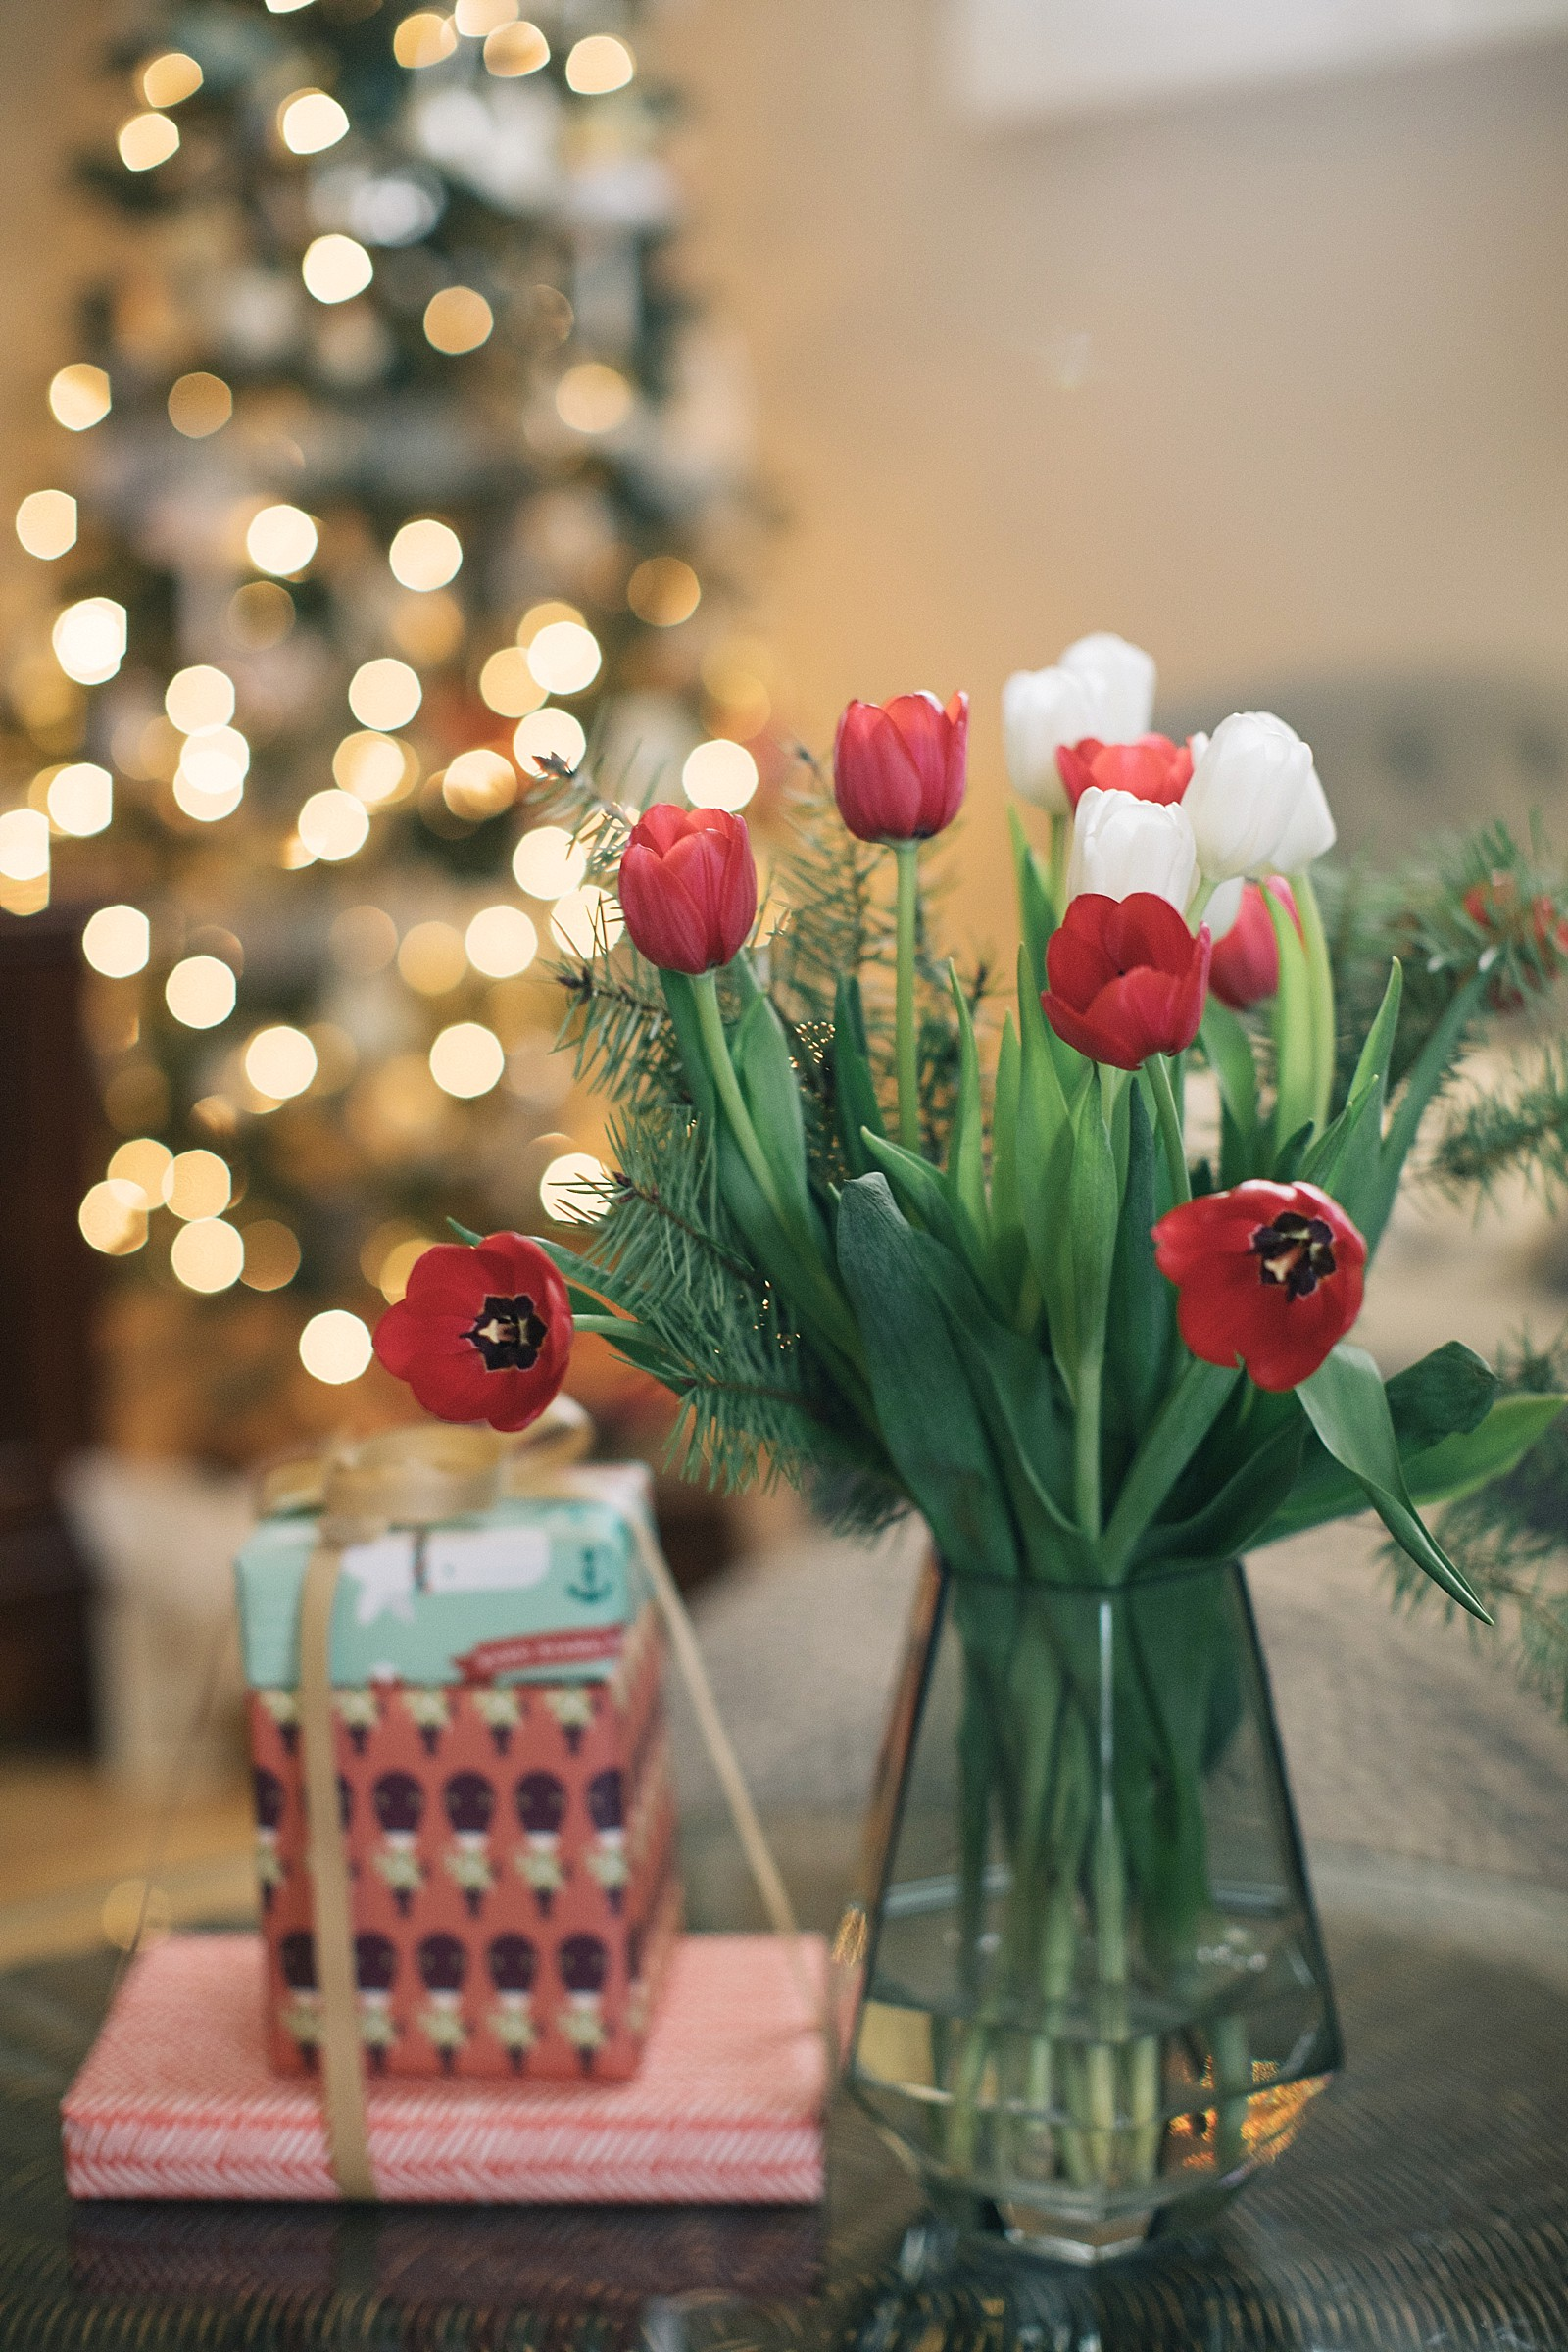 proflowers-christmas-how-to-assemble-flowers-0189